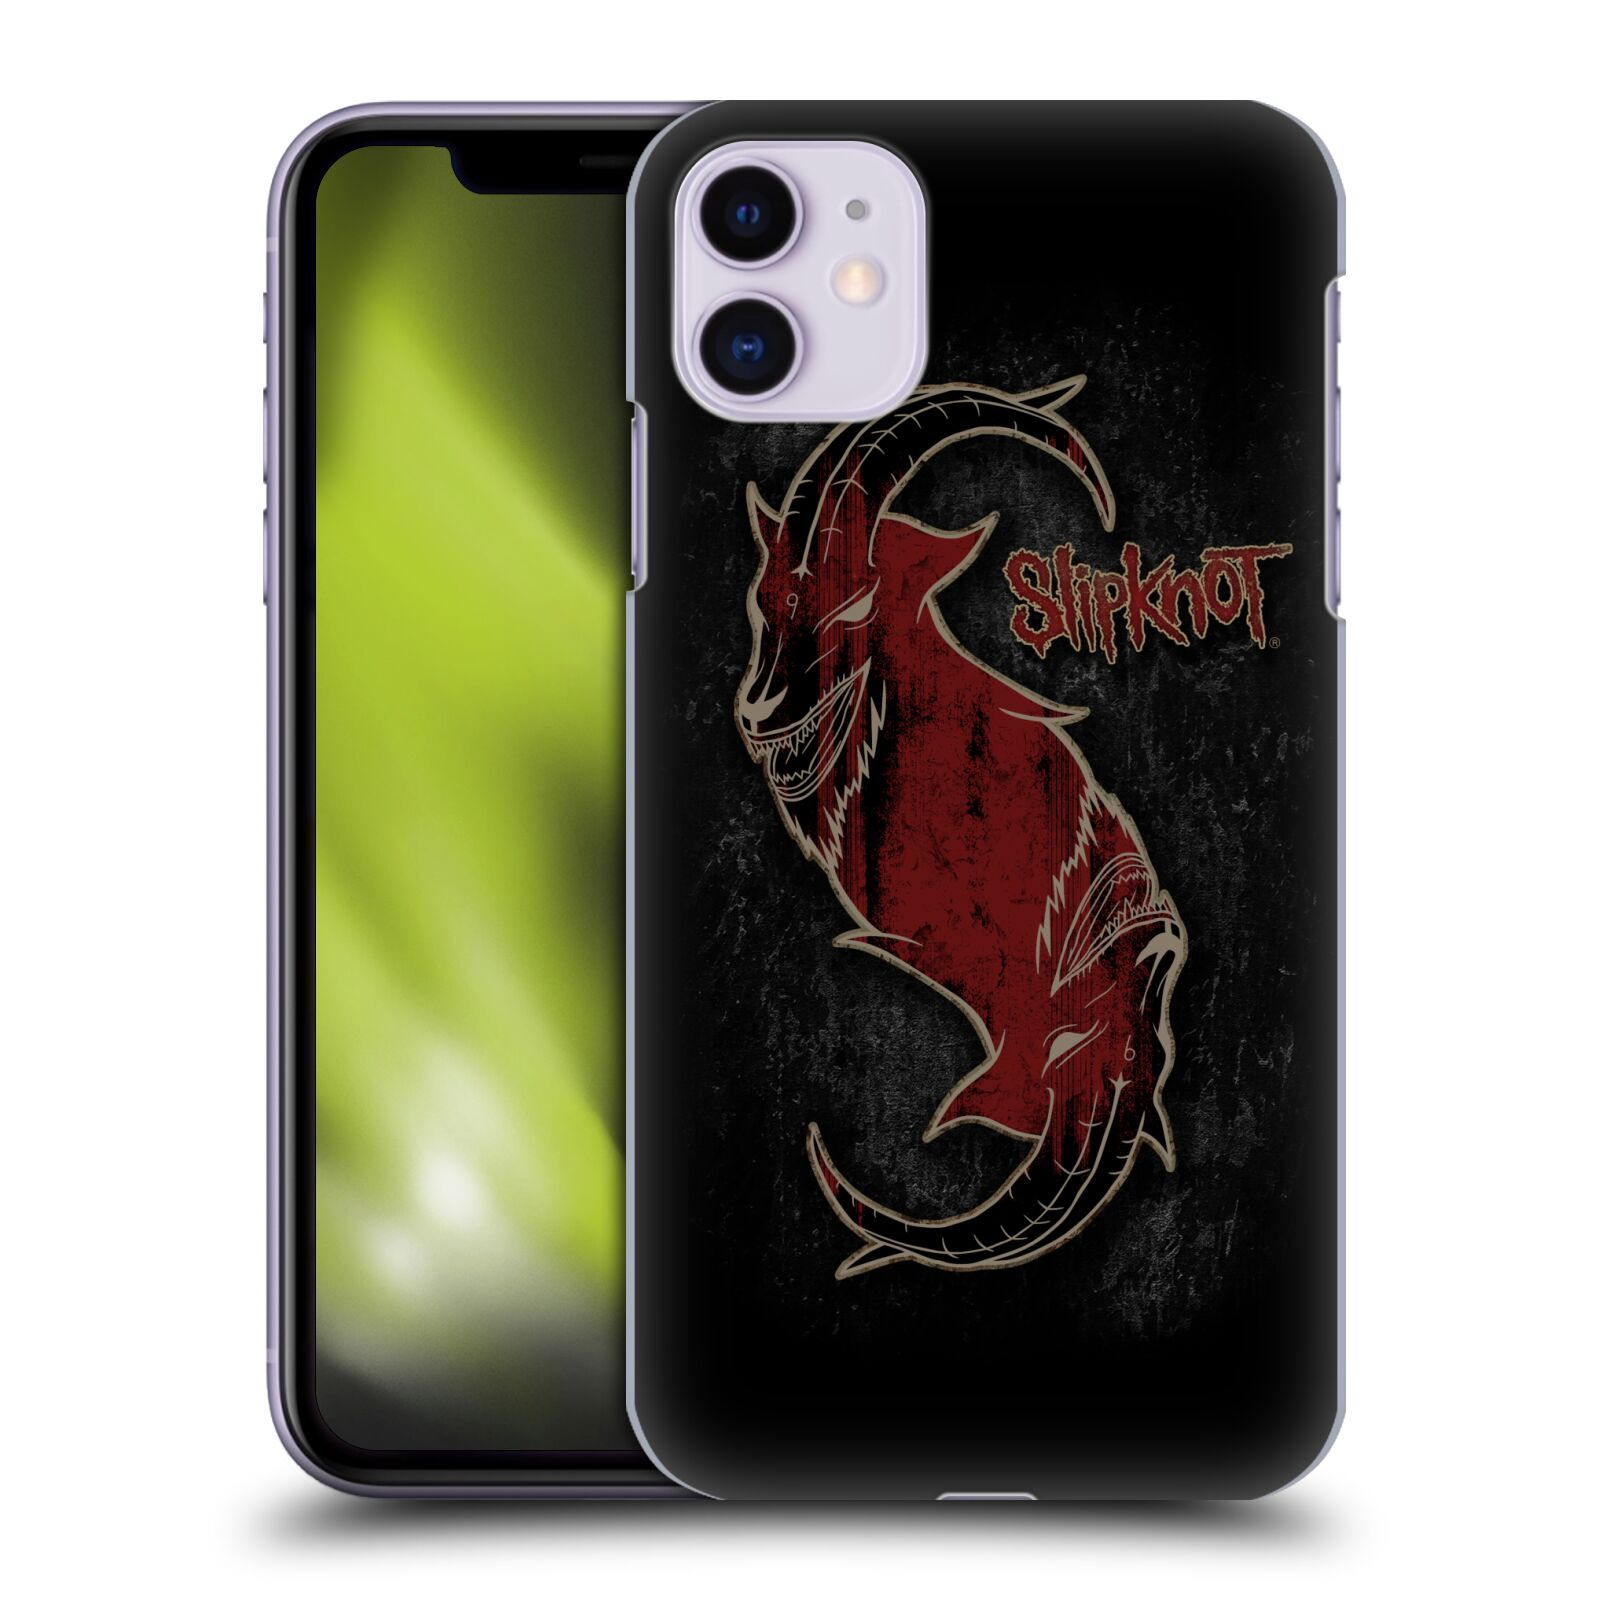 Plastové pouzdro na mobil Apple iPhone 11 - Head Case - Slipknot - Rudý kozel